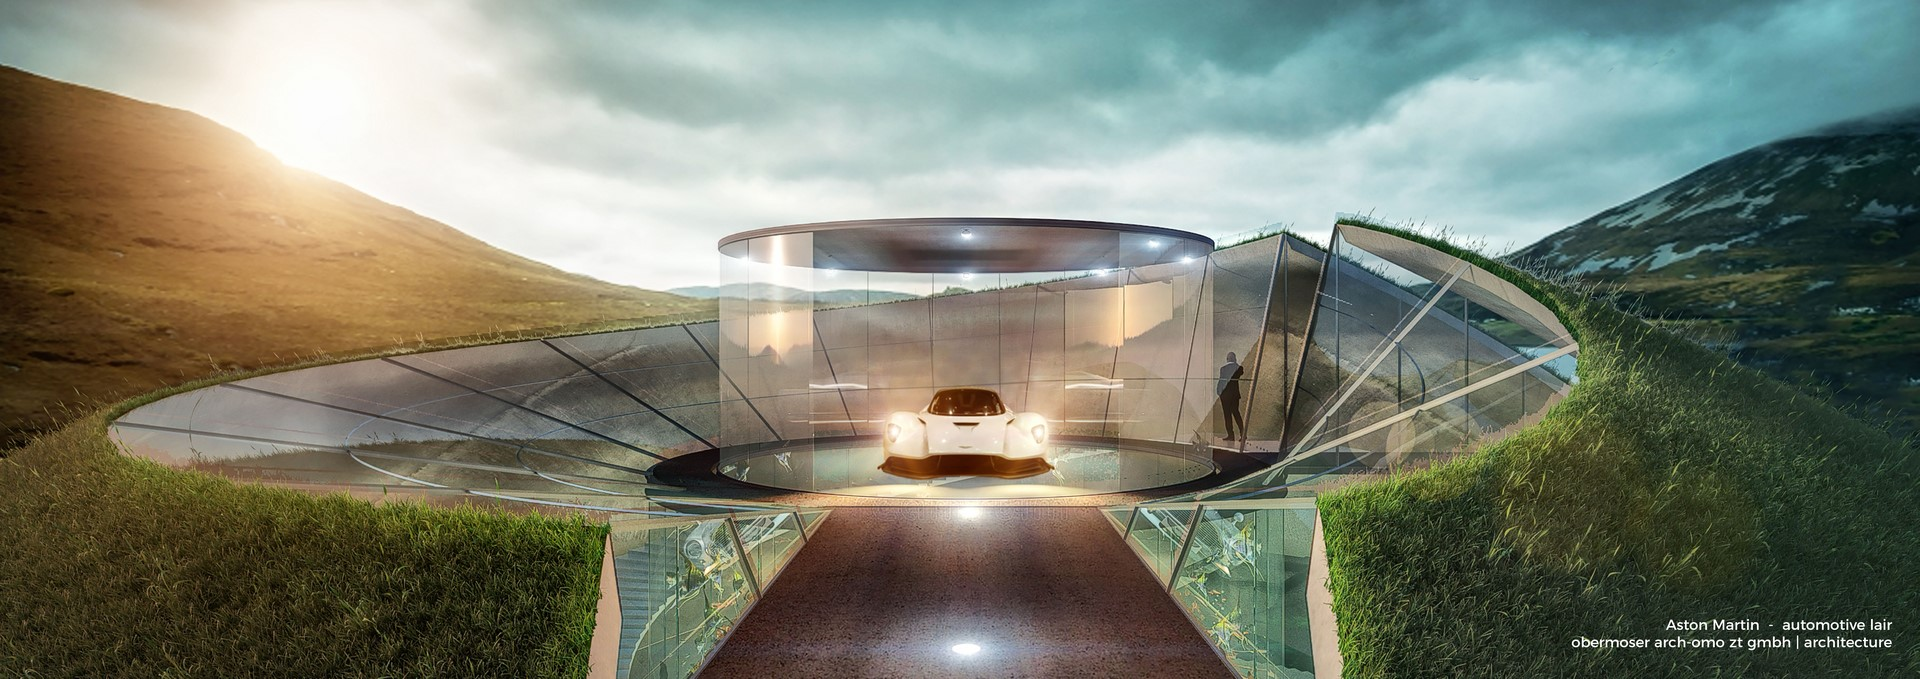 Aston-Martin-Automotive-parking-Galleries-and-Lairs-revealed-at-Pebble-Beach_01-7